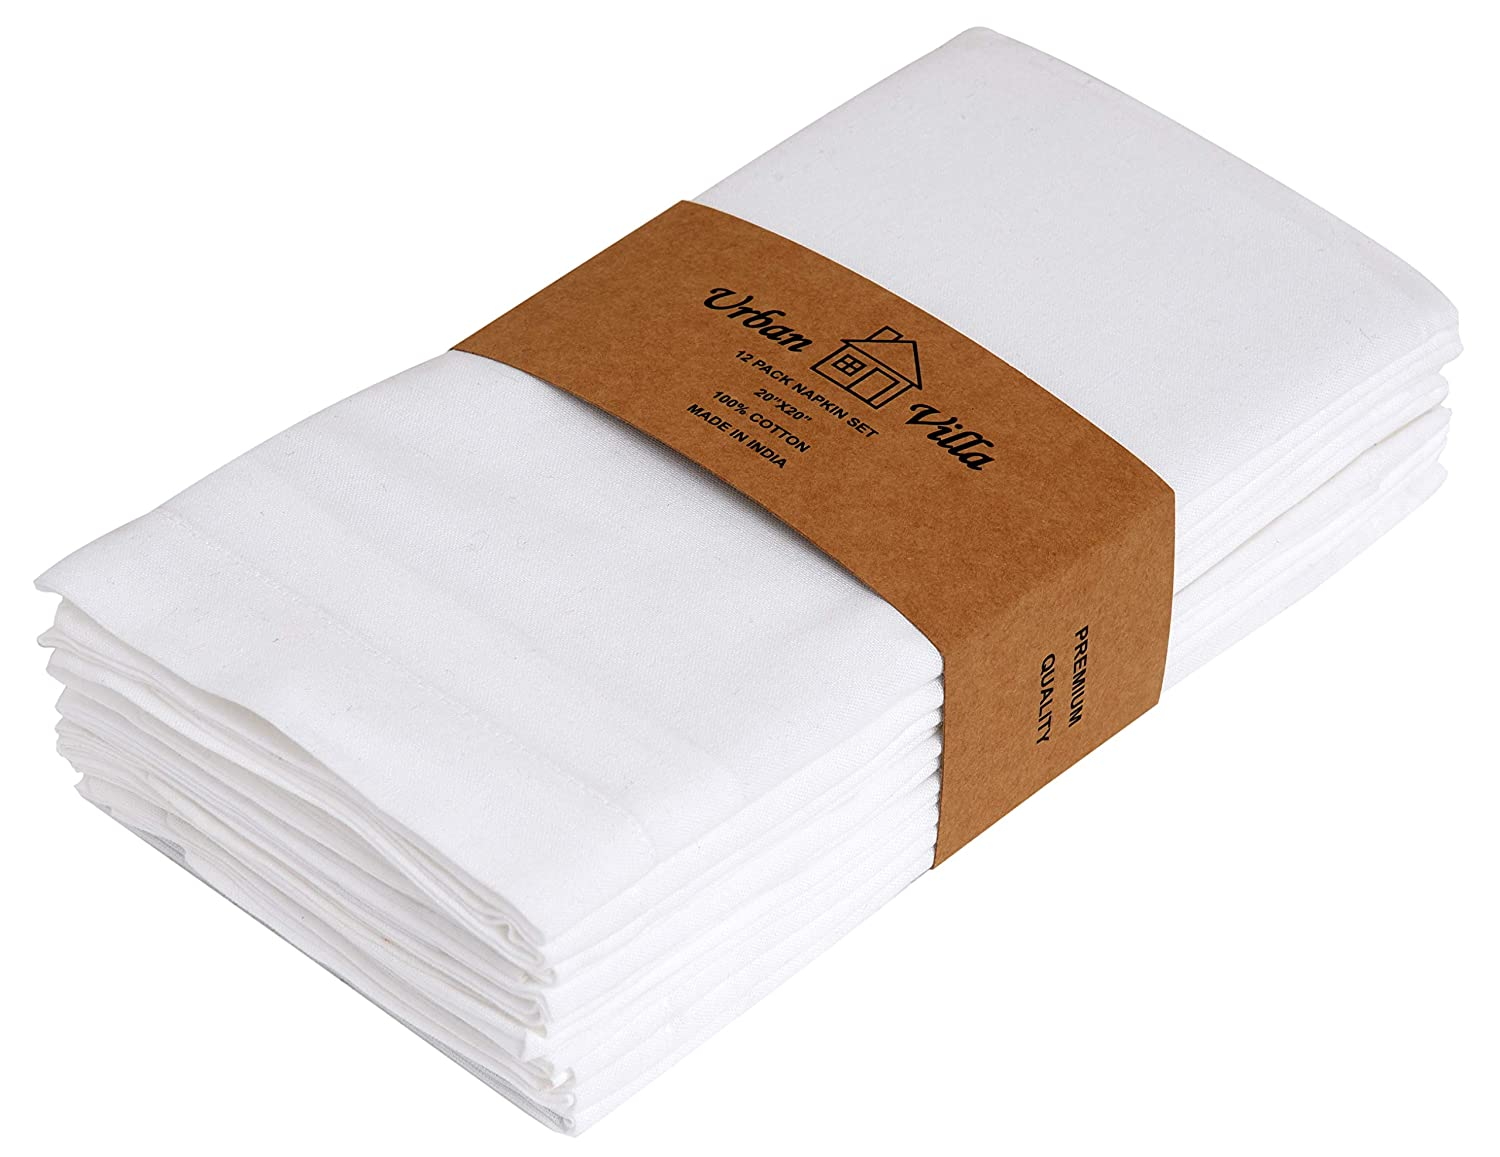 Urban Villa White Solid Flat Weave Ultra Soft, Premium Quality,Dinner Napkins, 100% Cotton, Set of 12, Size 20X20 Inch, White Oversized Cloth Napkins with Mitered Corners, Durable Hotel Quality